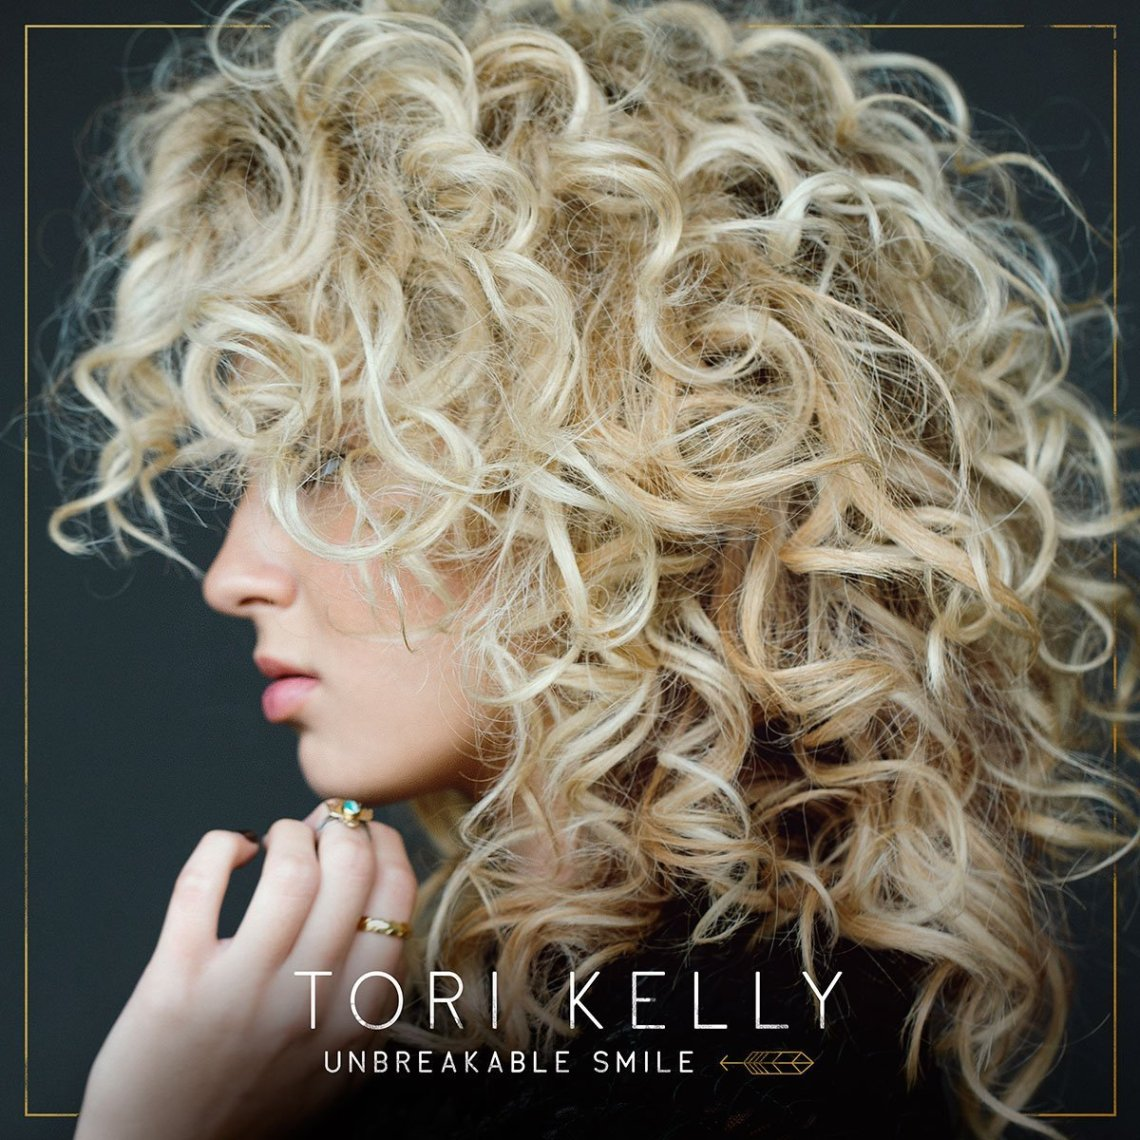 Tori Kelly Shows Off Tremendous Pipes On 'Unbreakable Smile'